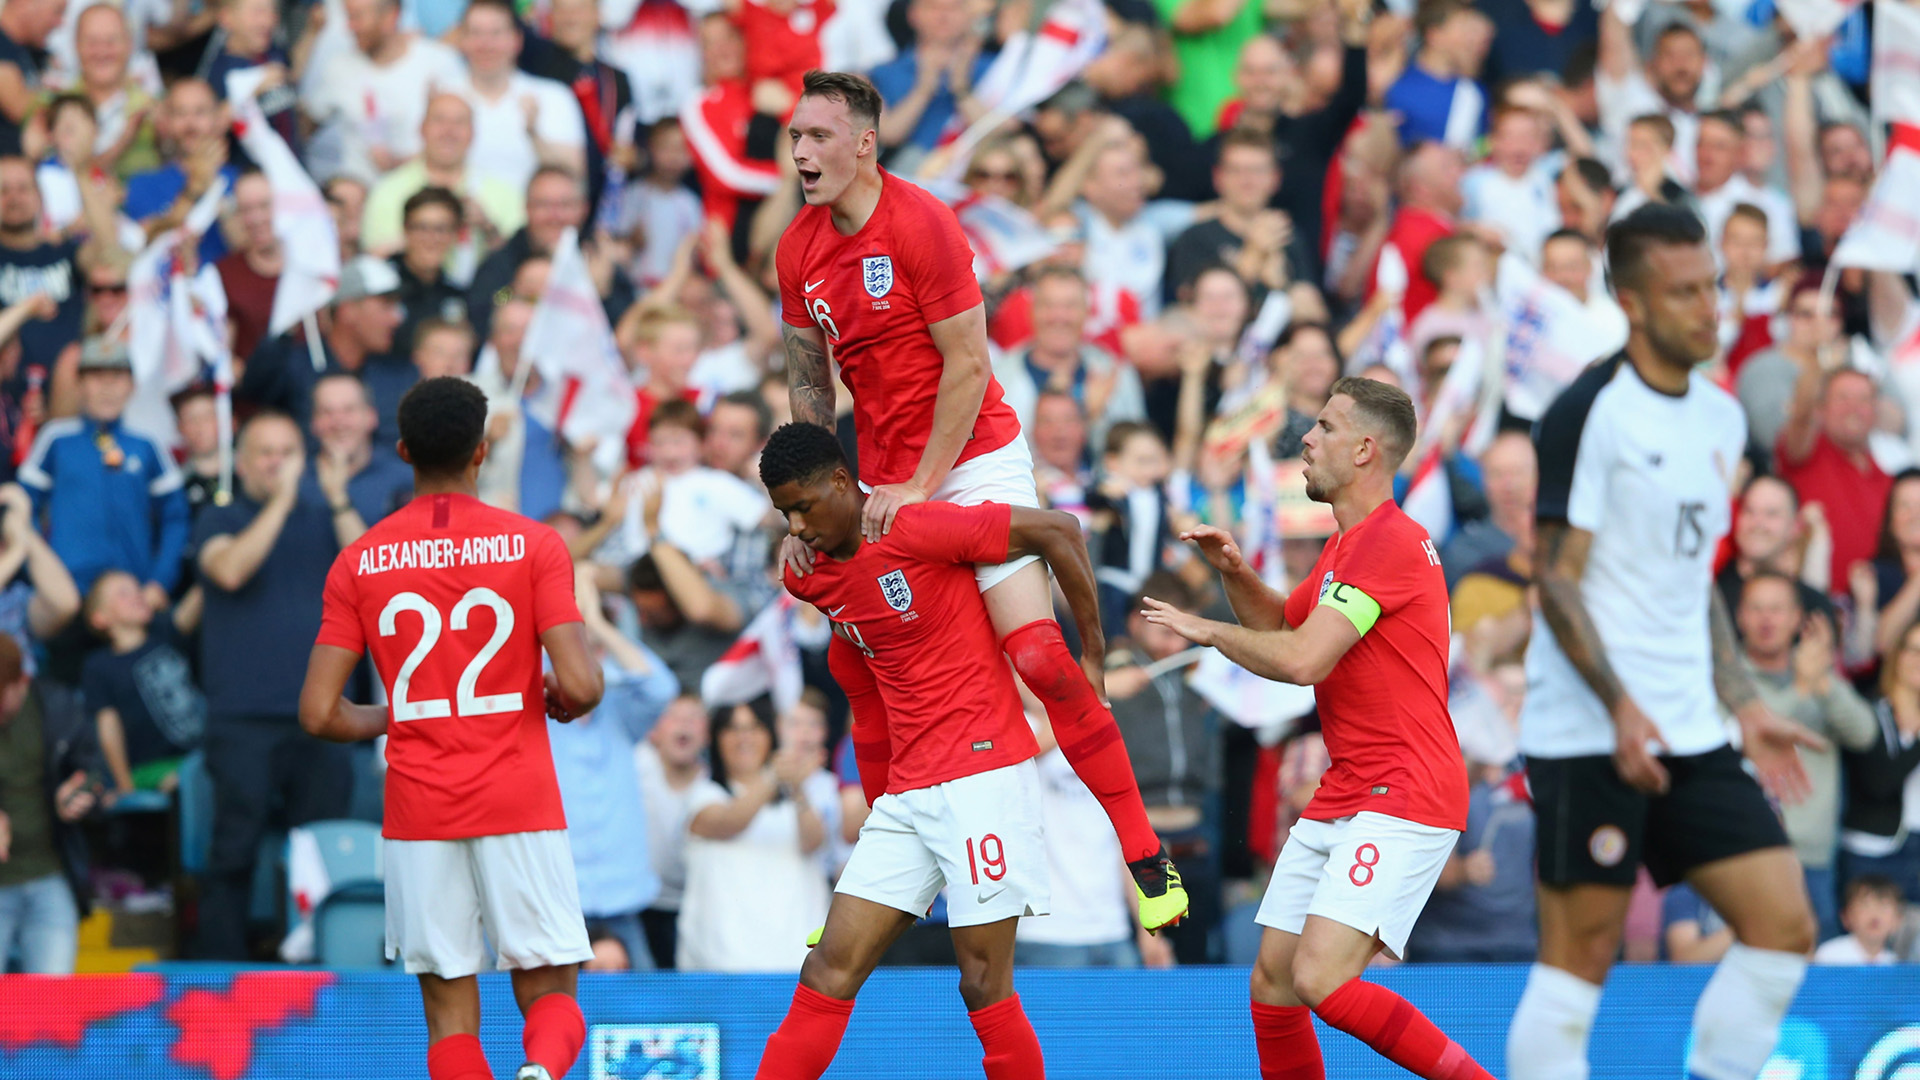 Kane's dramatic stoppage-time goal gives England win over Tunisia